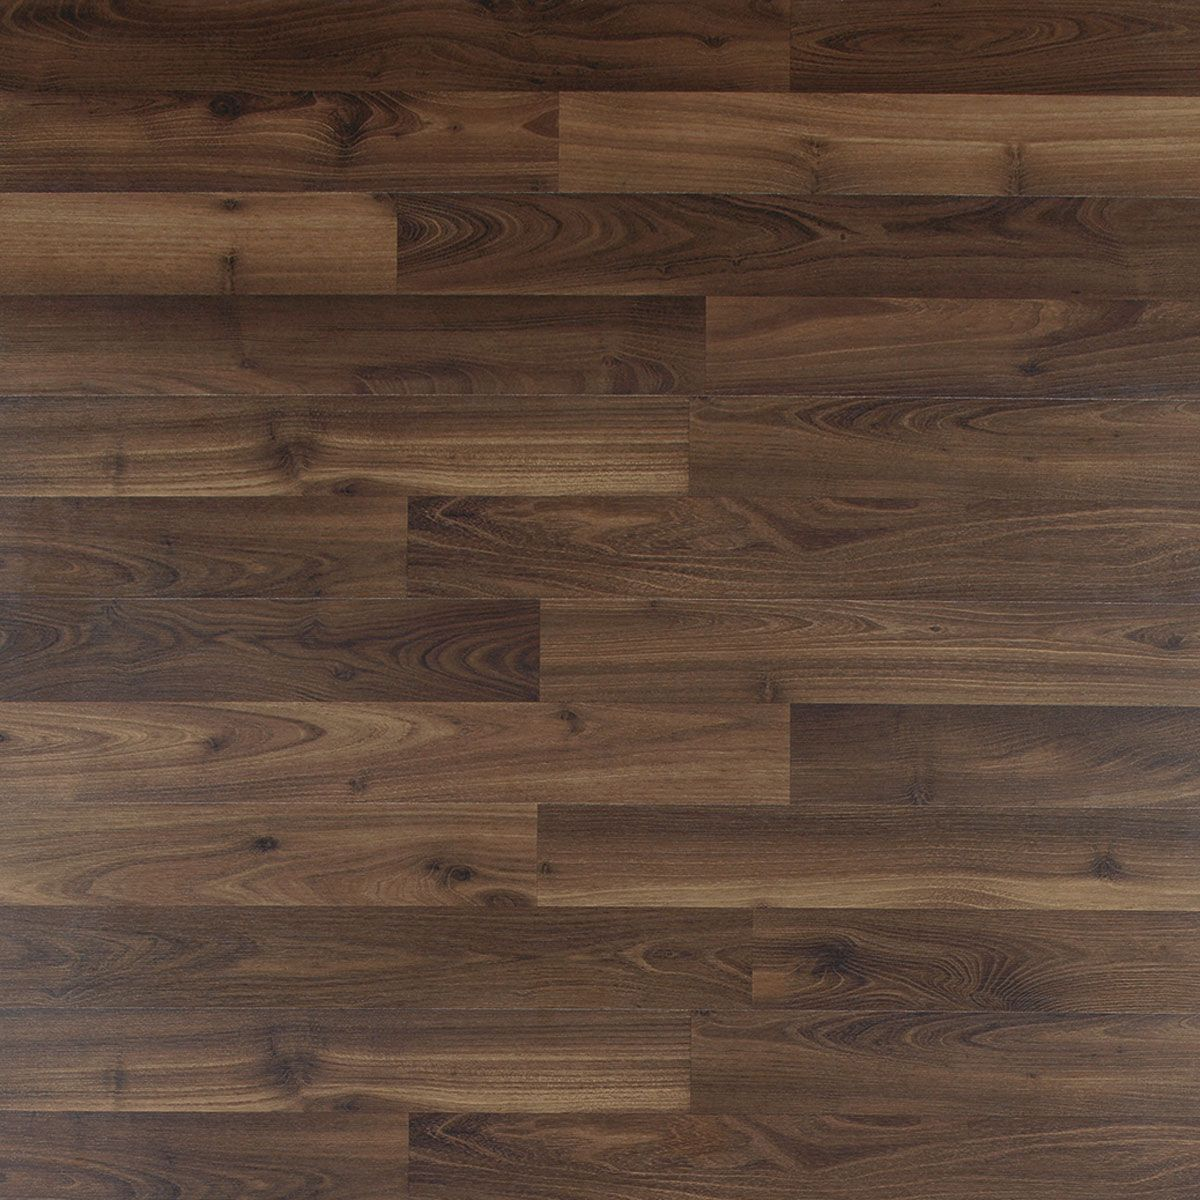 dark wood floor pattern. Laminate Floors  Quick Step Flooring Home Dark Acacia Google Image Result for http www flooringmaster com images